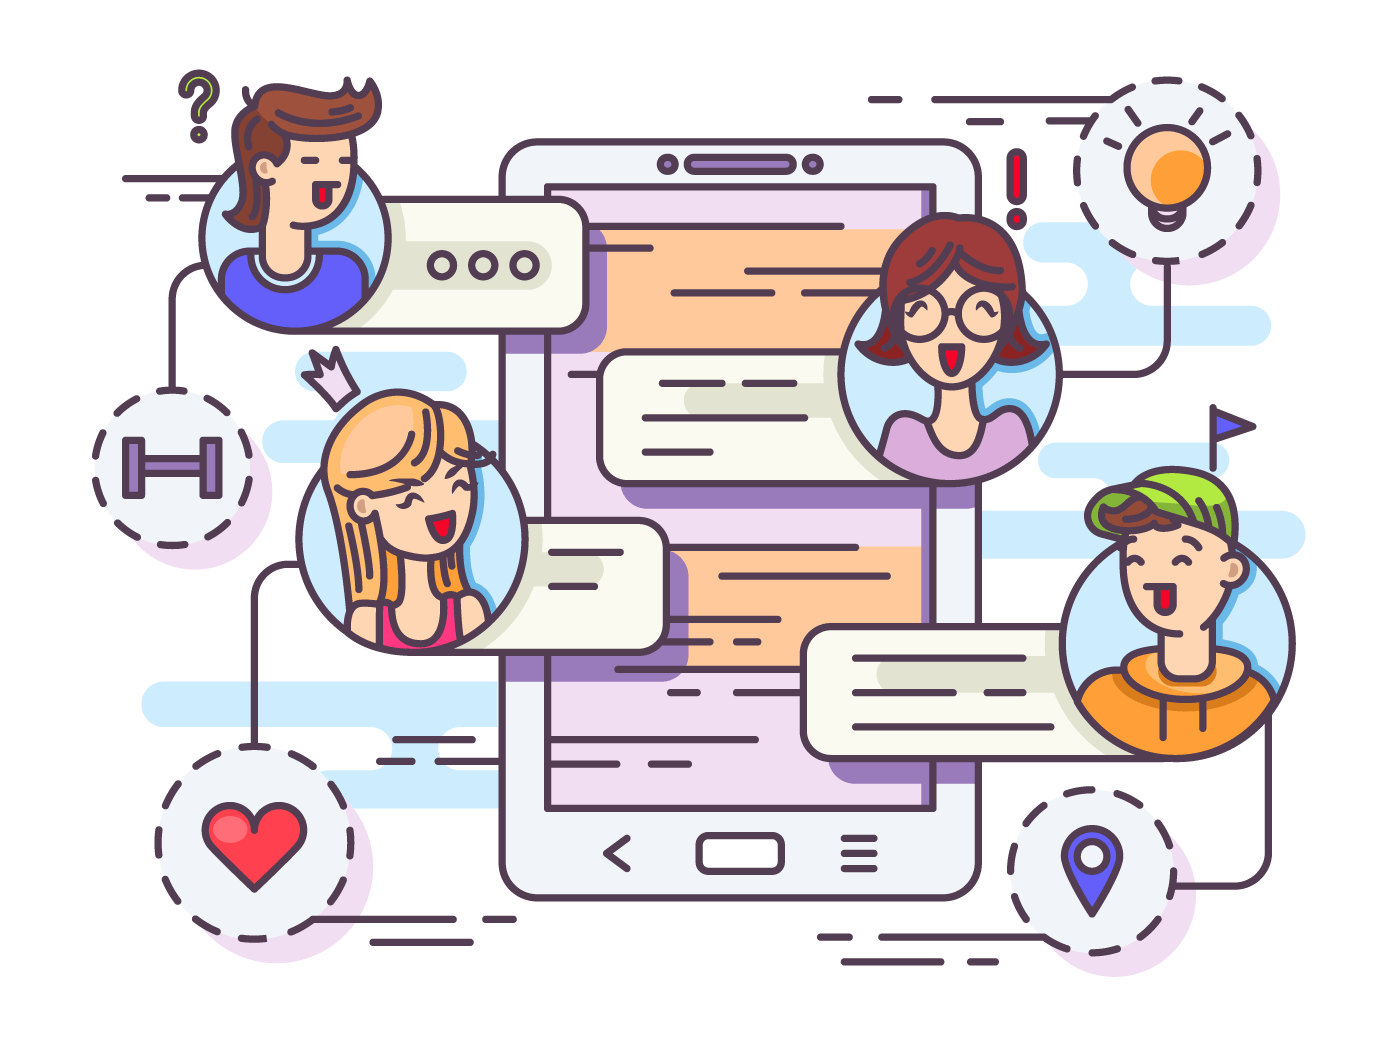 General chat group in messenger. Chatting between friends. Vector illustration